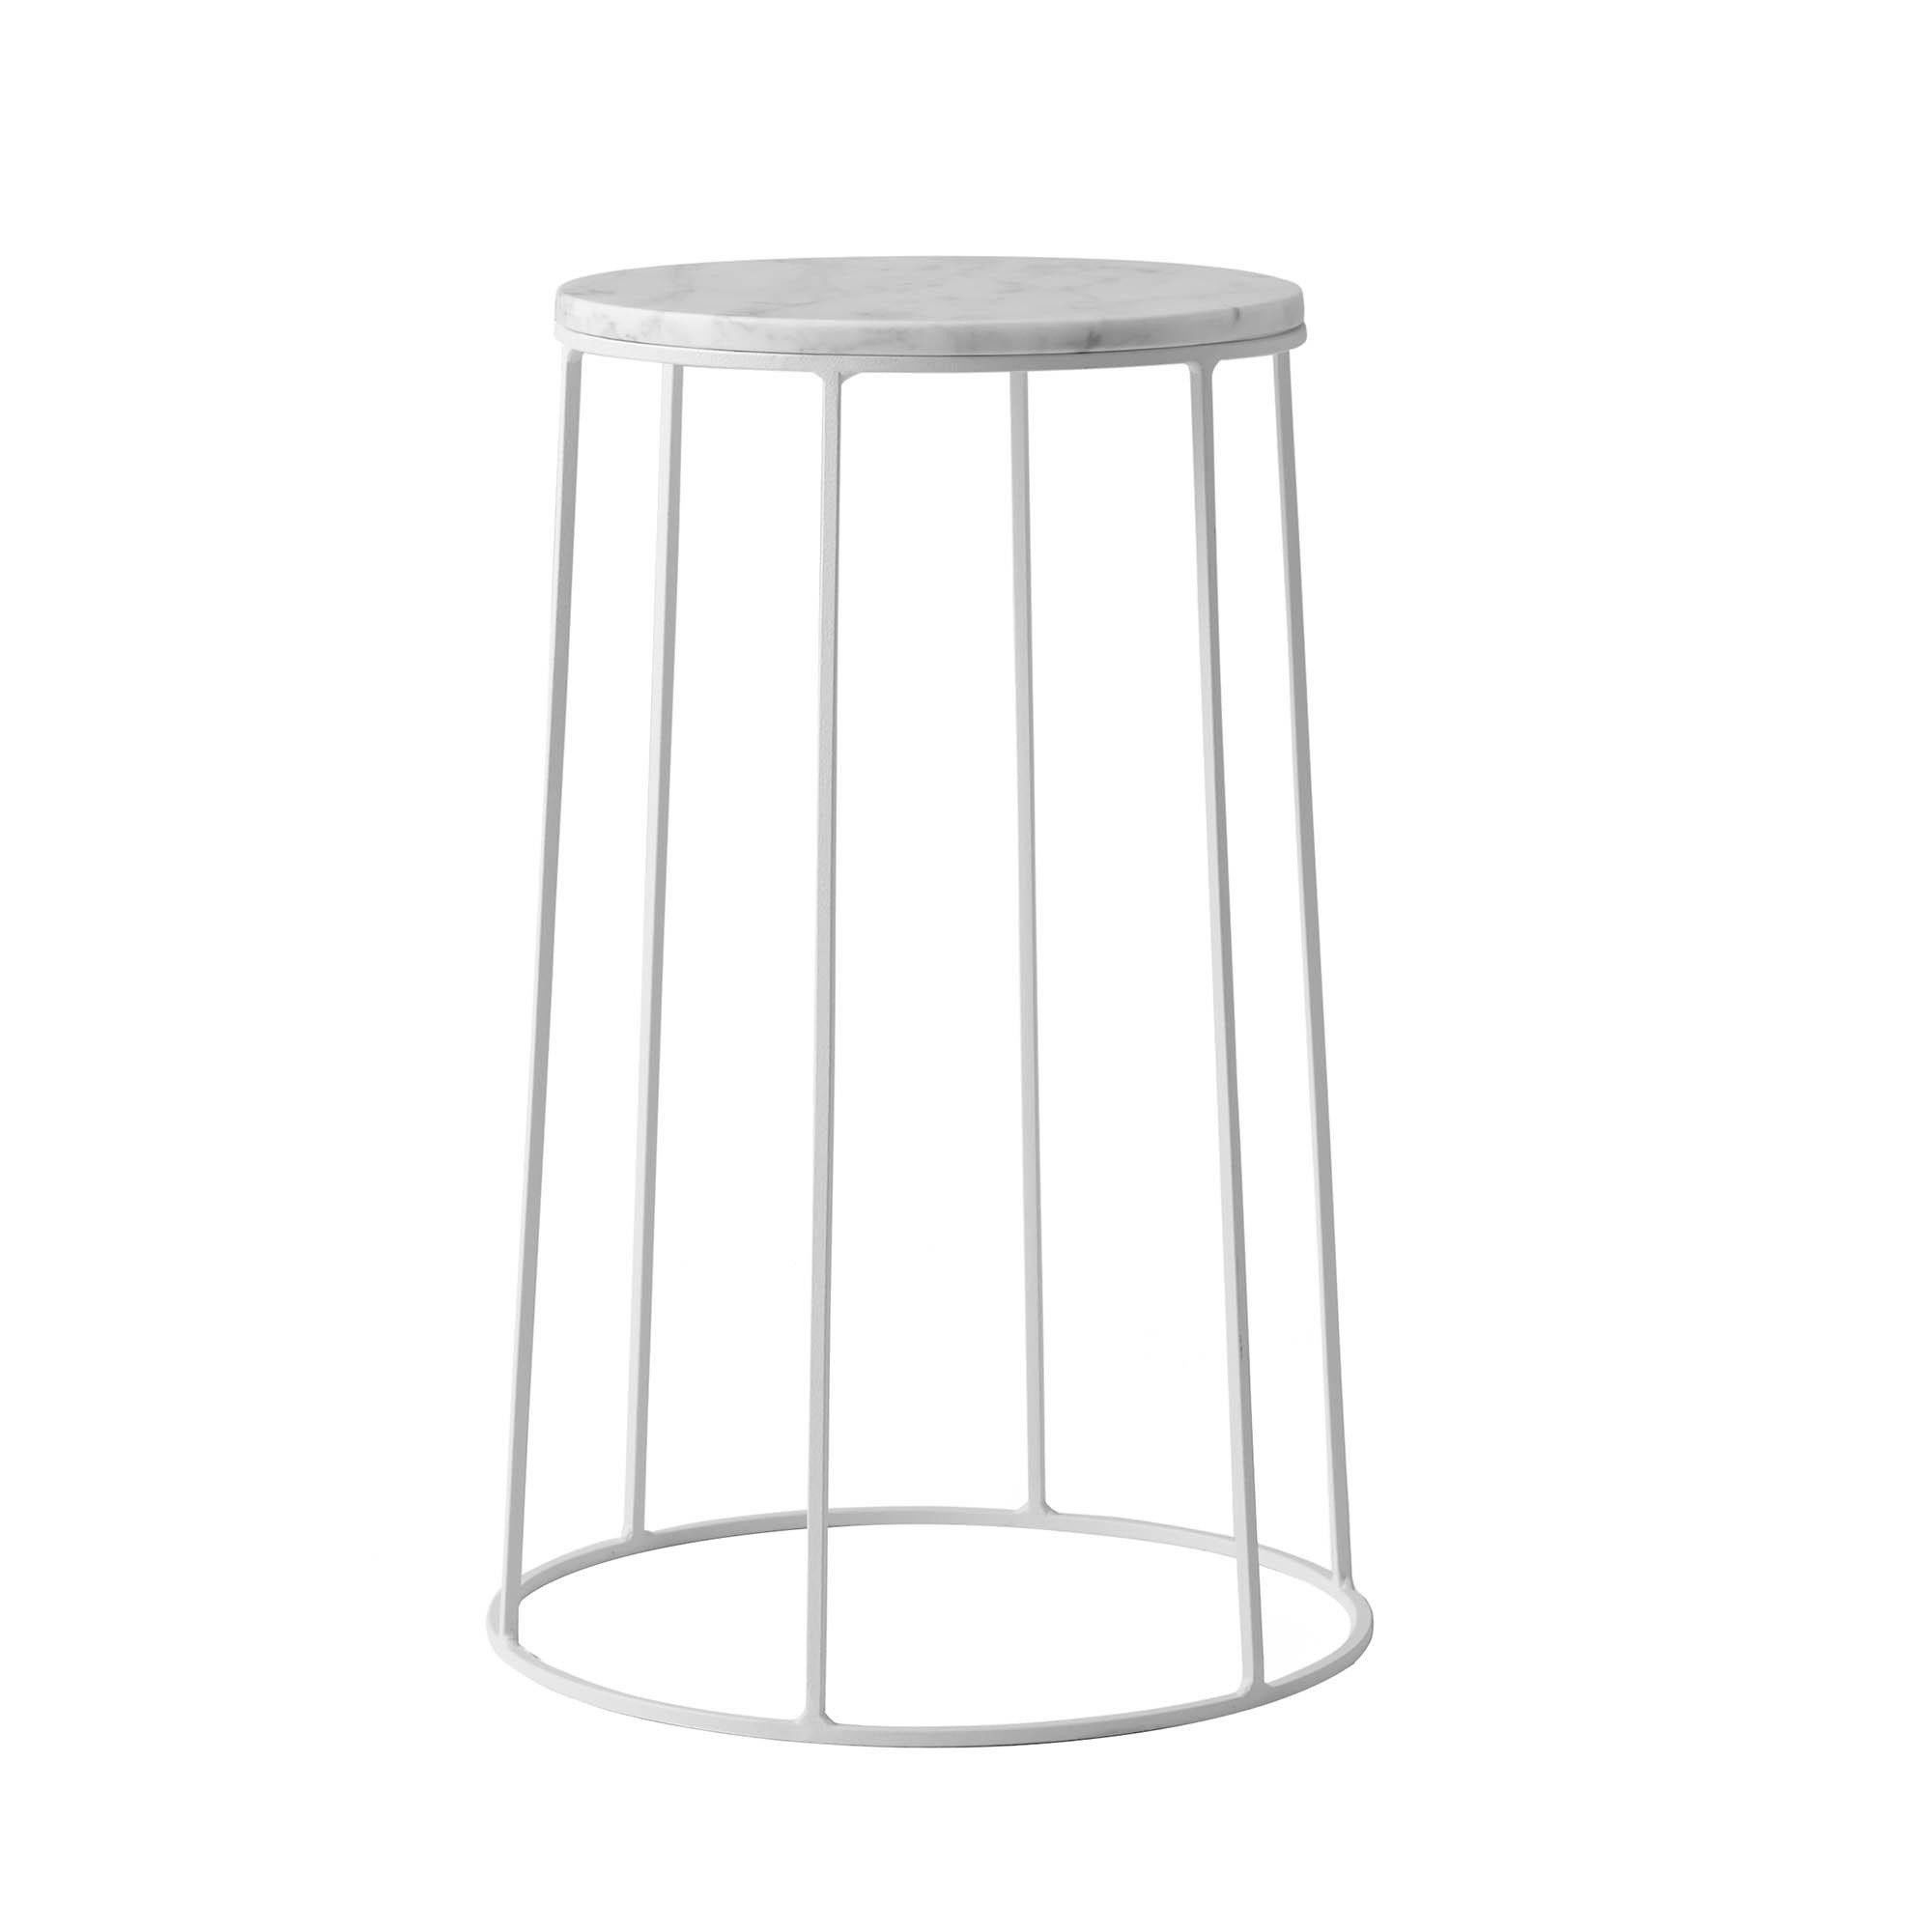 Menu   Wire Table Marble Side Table 41,8cm ...